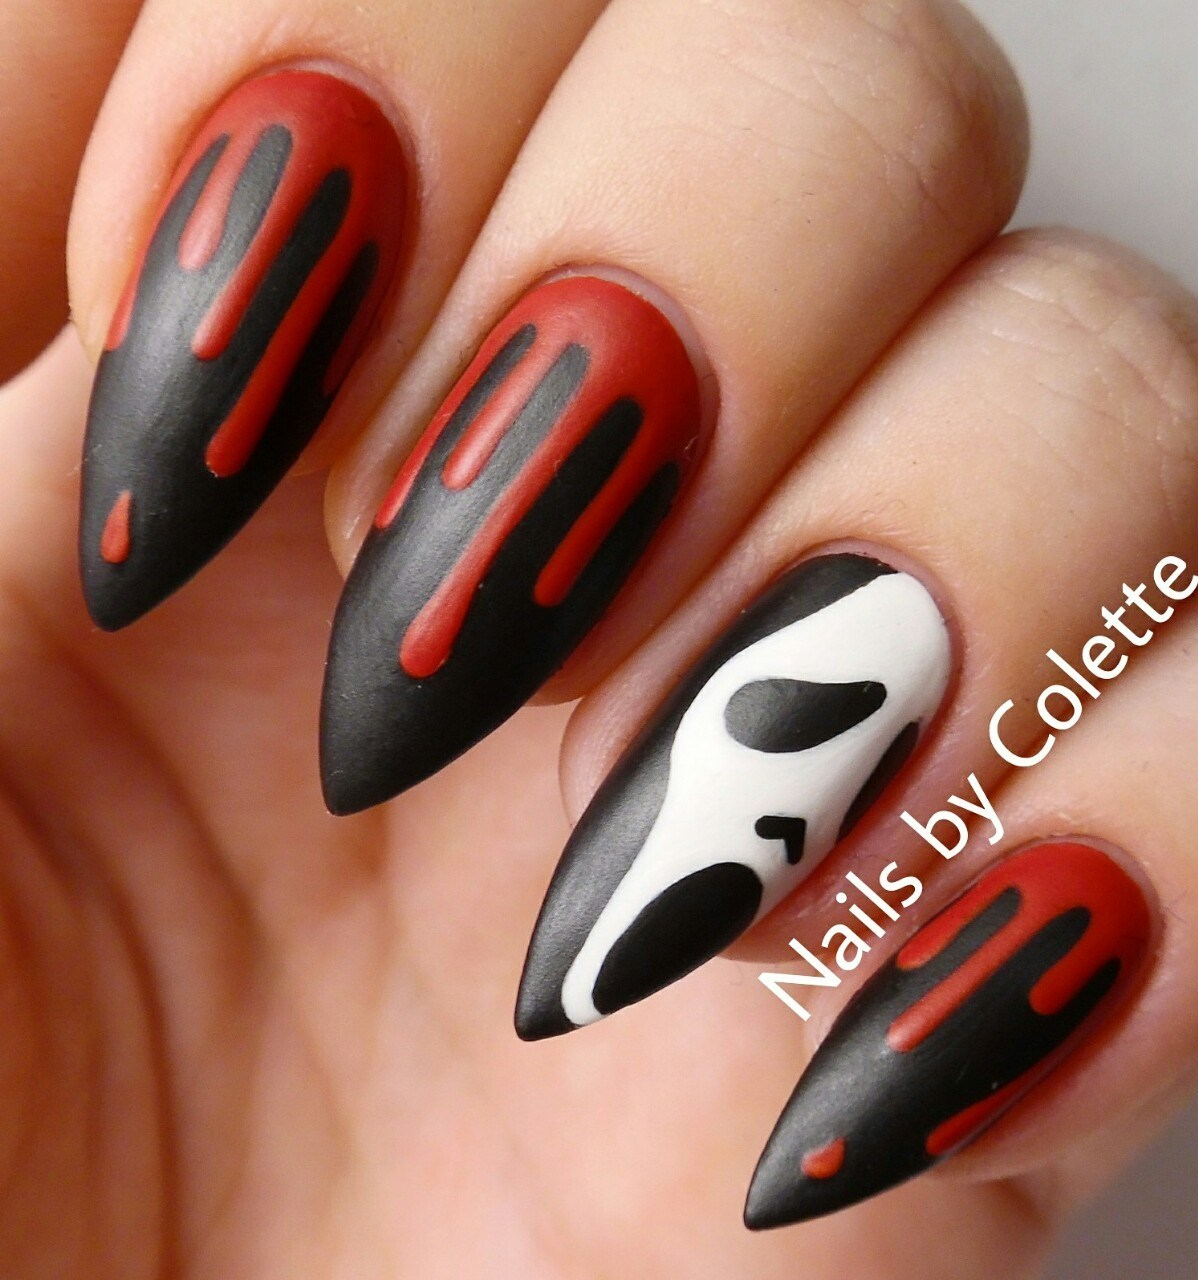 great nail art idea for halloween